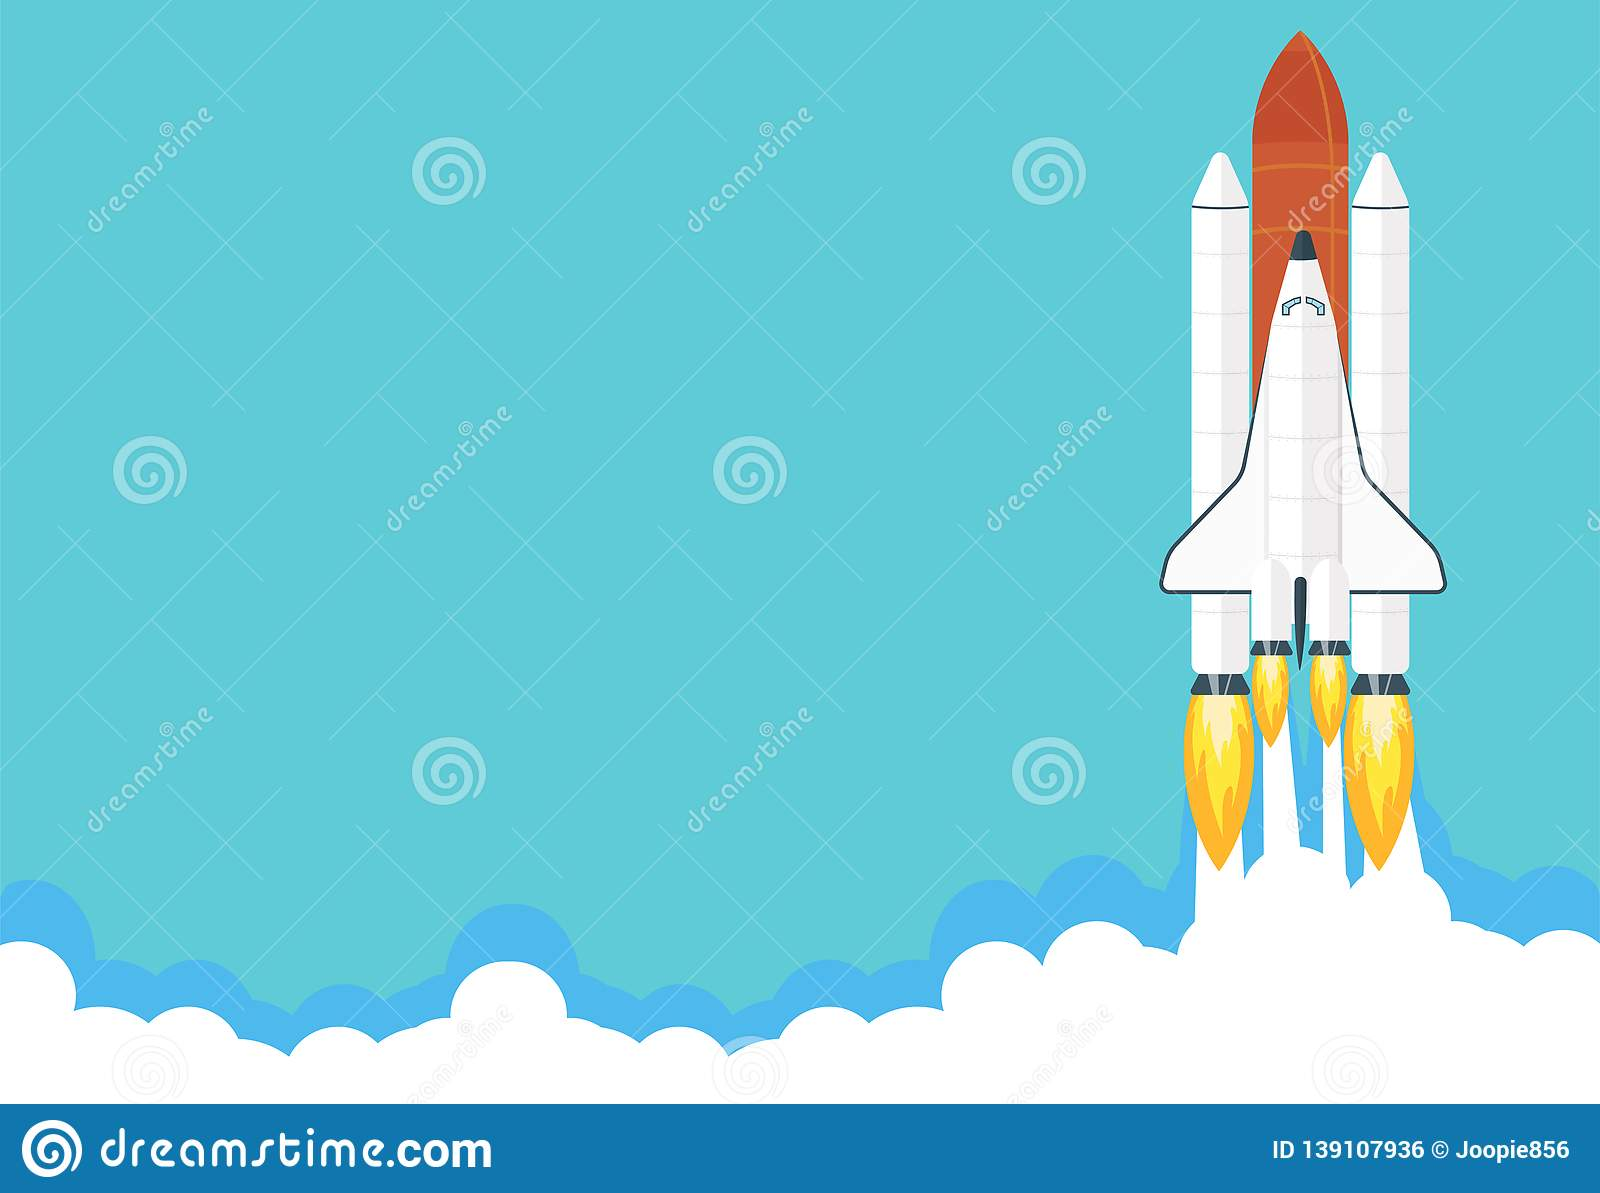 Space shuttle launch illustration. Business or project startup banner concept. Flat style vector illustration